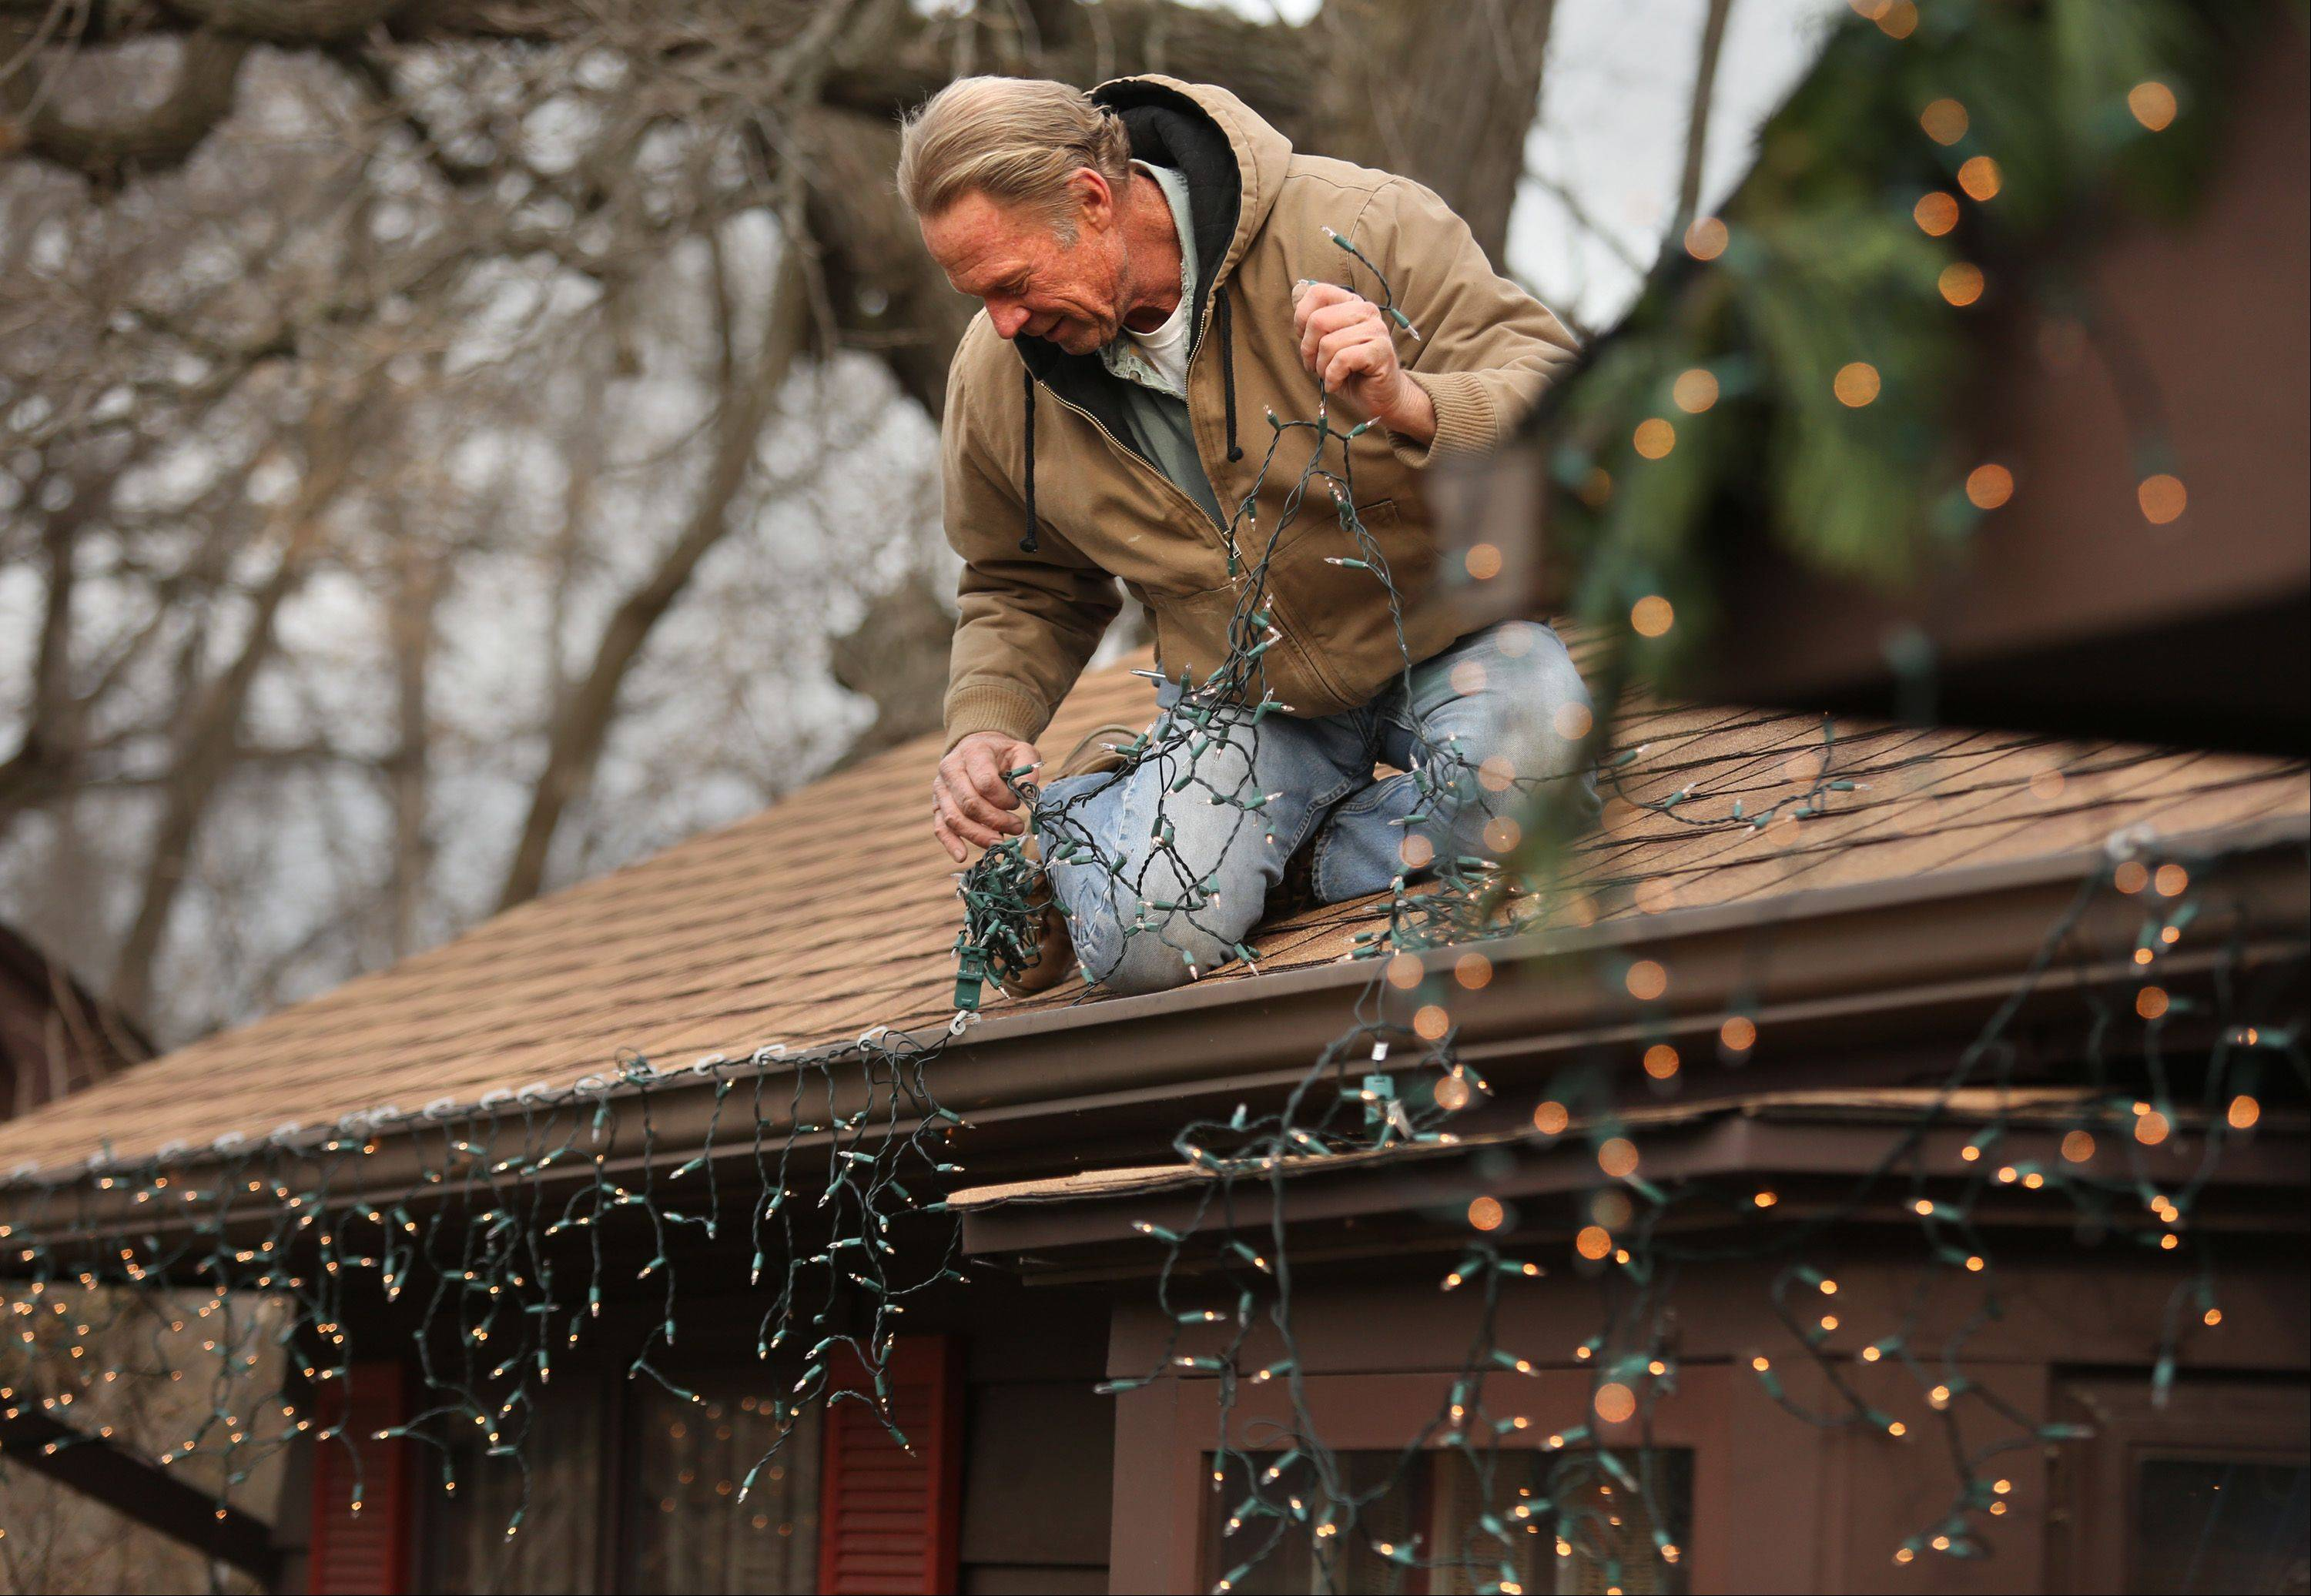 Steve Patzer, of St. Charles, decorates his house with Christmas lights Monday. His three daughters are coming home for the holiday, along with some spouses and even three grandchildren. He says he began decorating the house to surprise the girls when they would come home from college, and he�s been keeping the tradition going every year since.